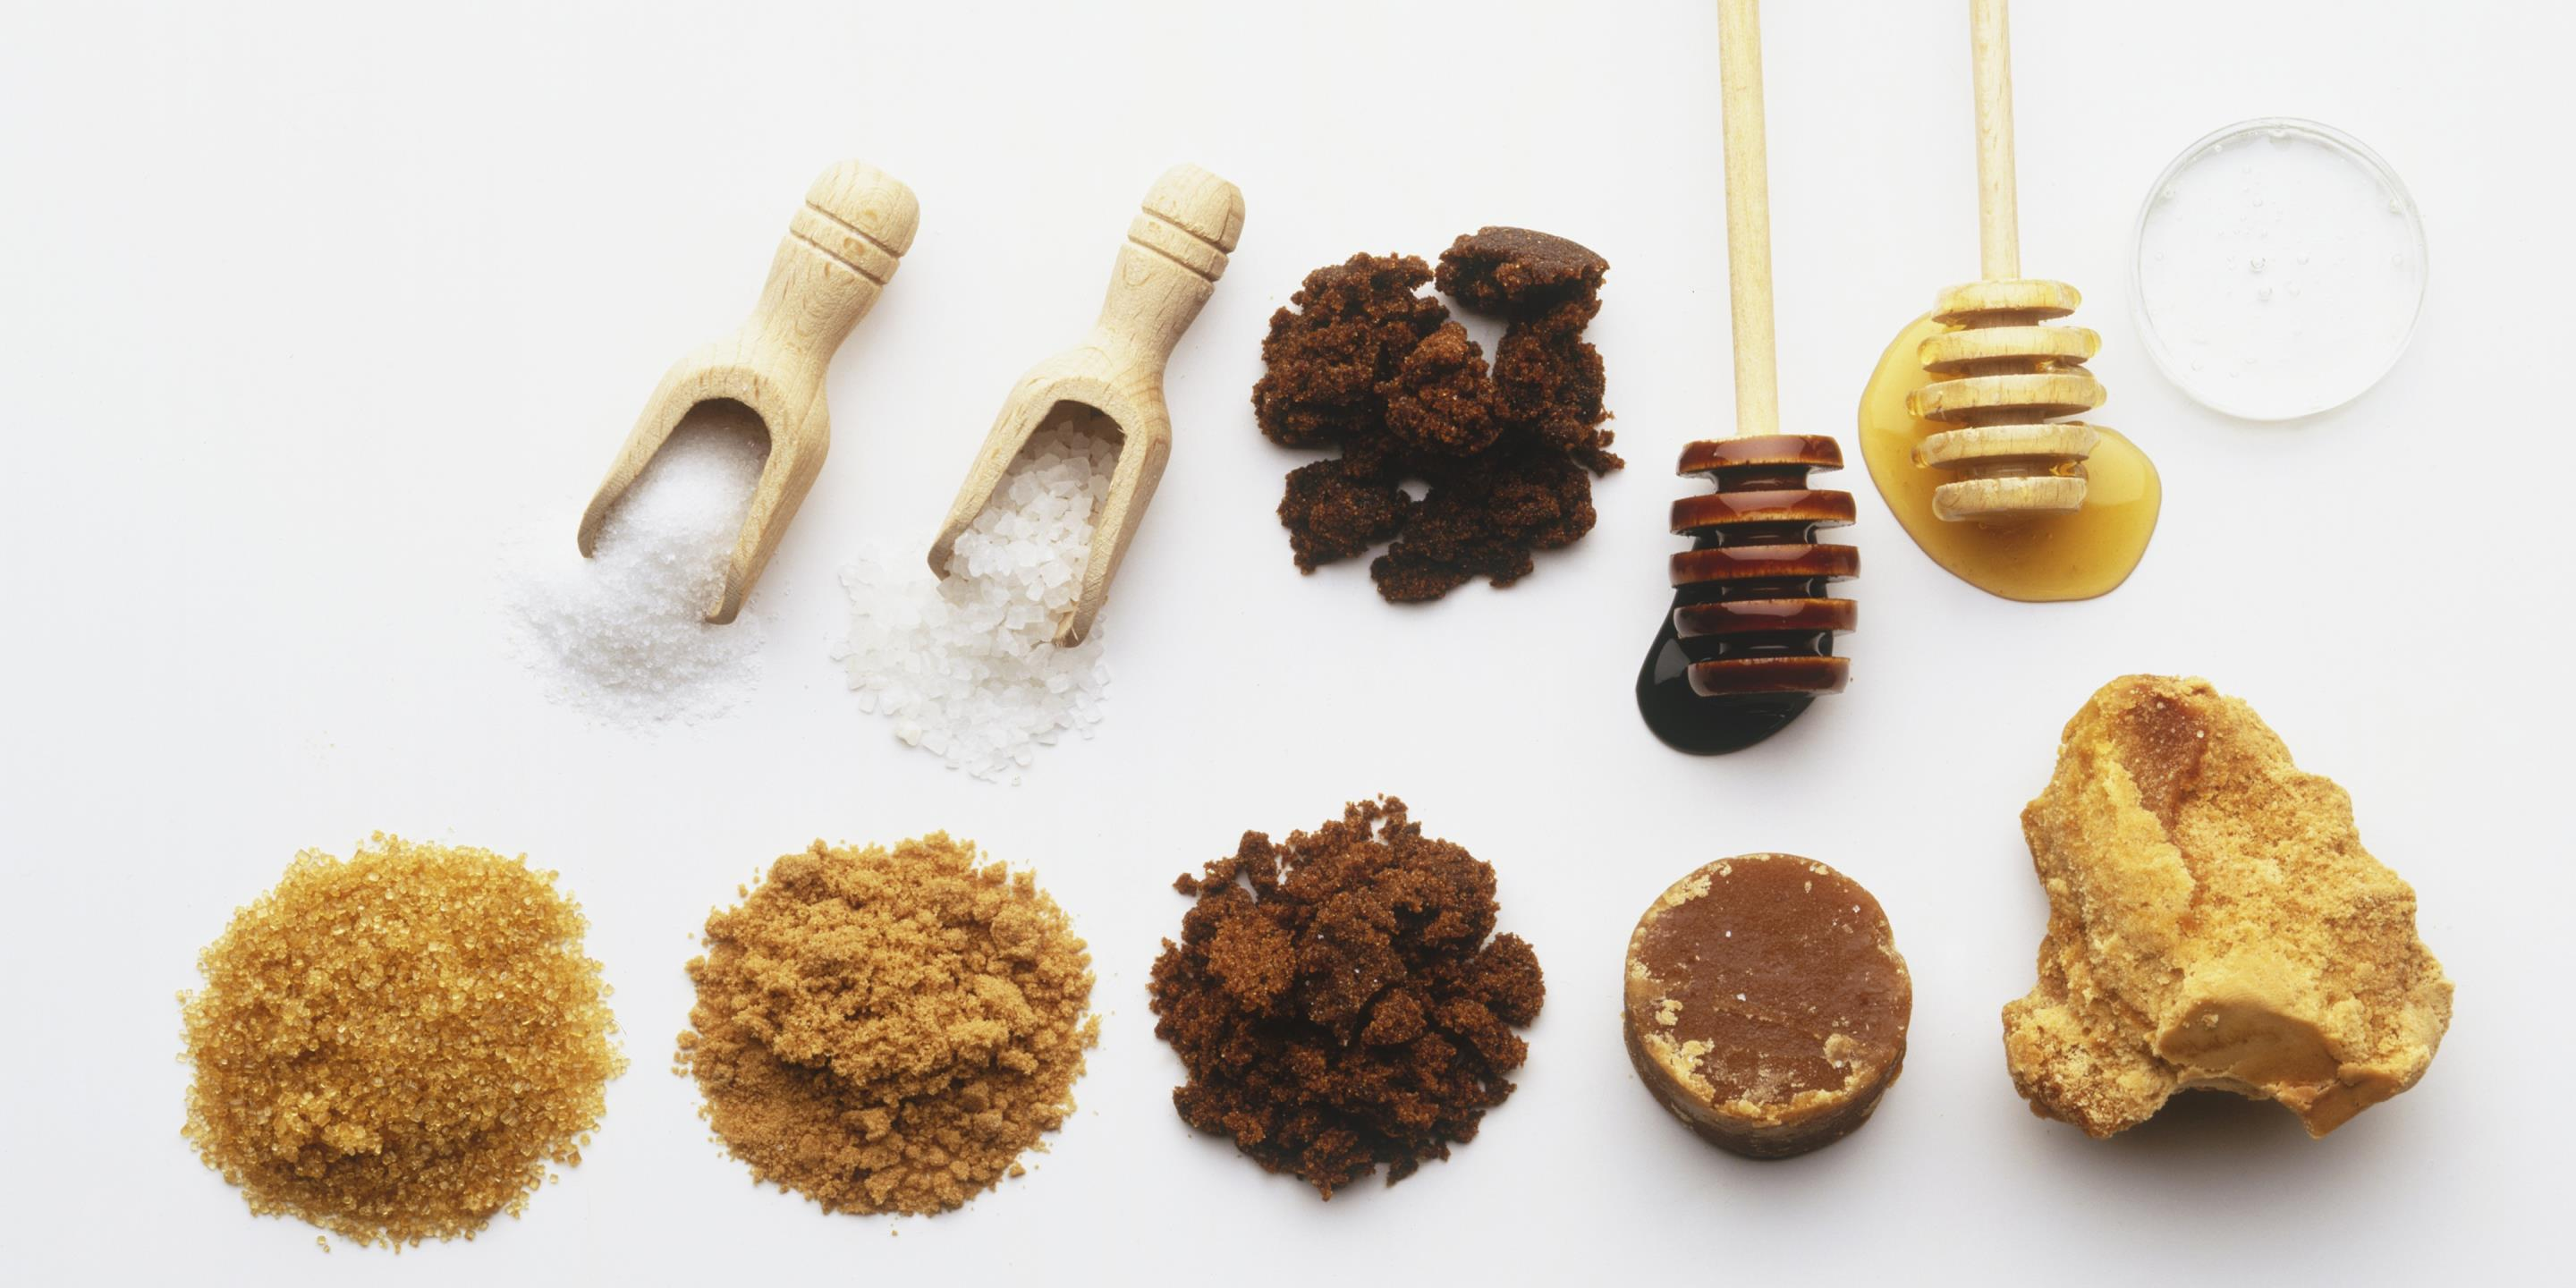 Ranking sugars, from best to worst